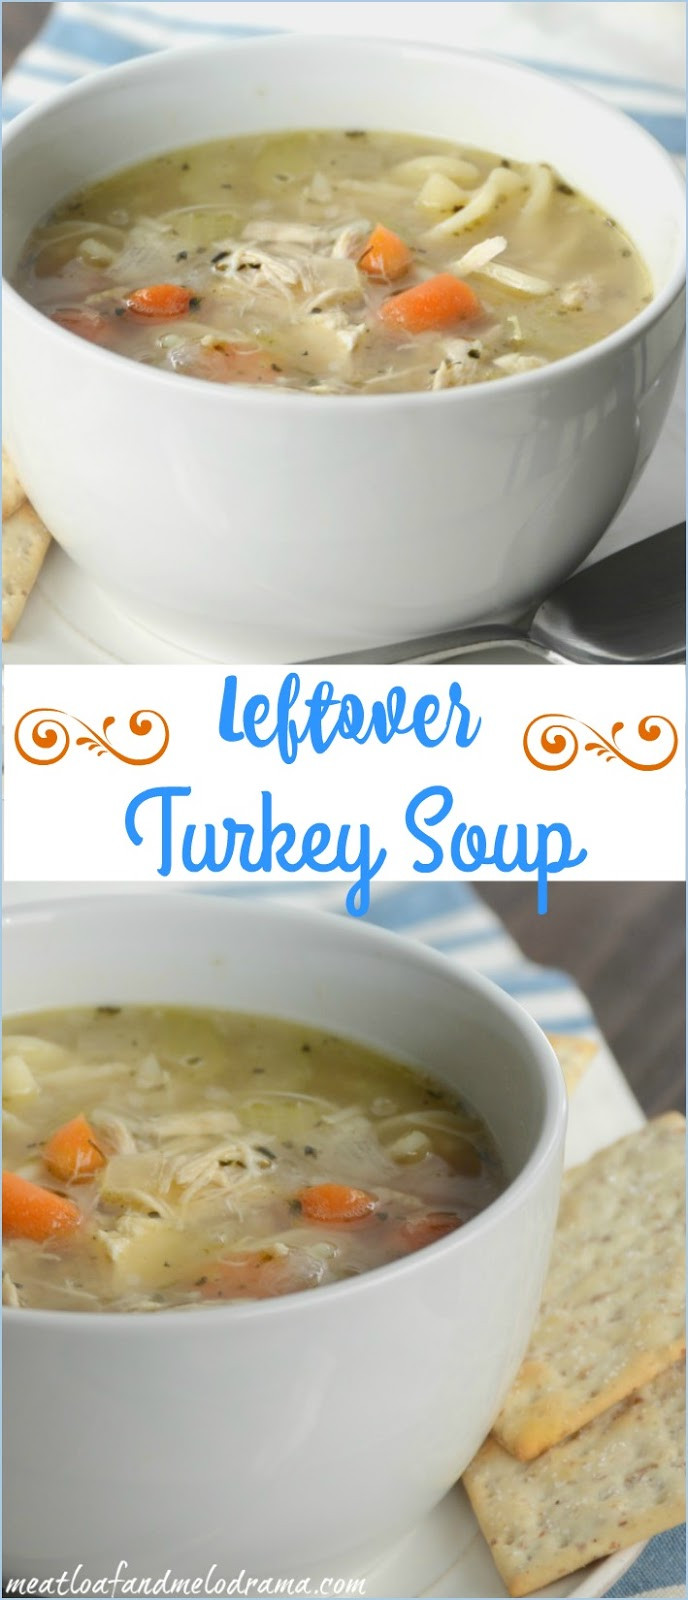 Turkey Soup From Thanksgiving Leftovers  Easy Turkey Soup Meatloaf and Melodrama